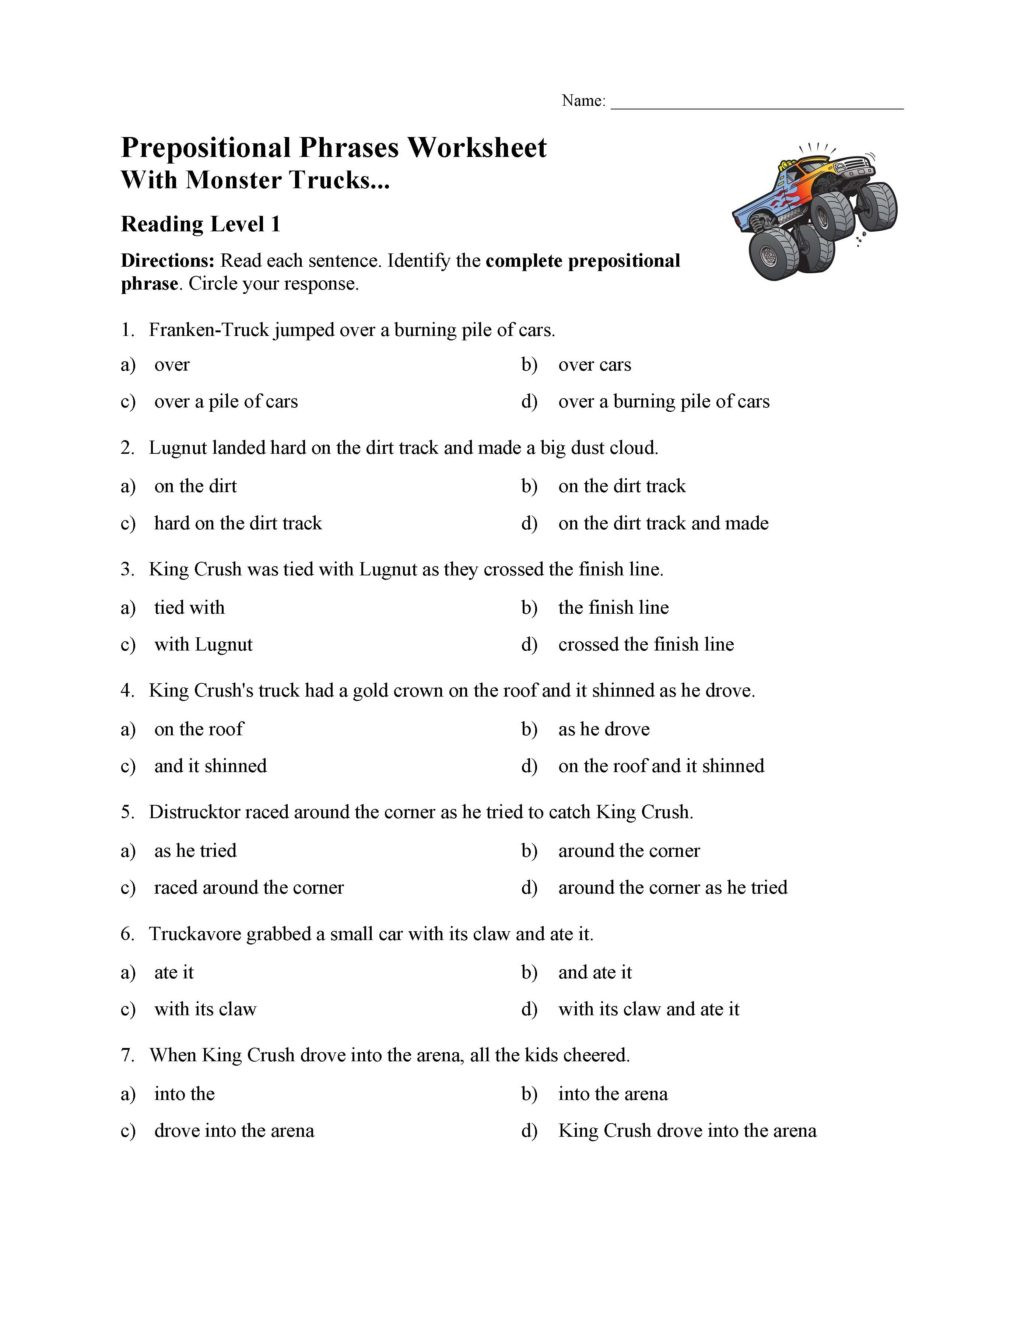 Prepositional Phrase Worksheet 4th Grade Worksheet Prepositional Phrases Worksheeteading Level